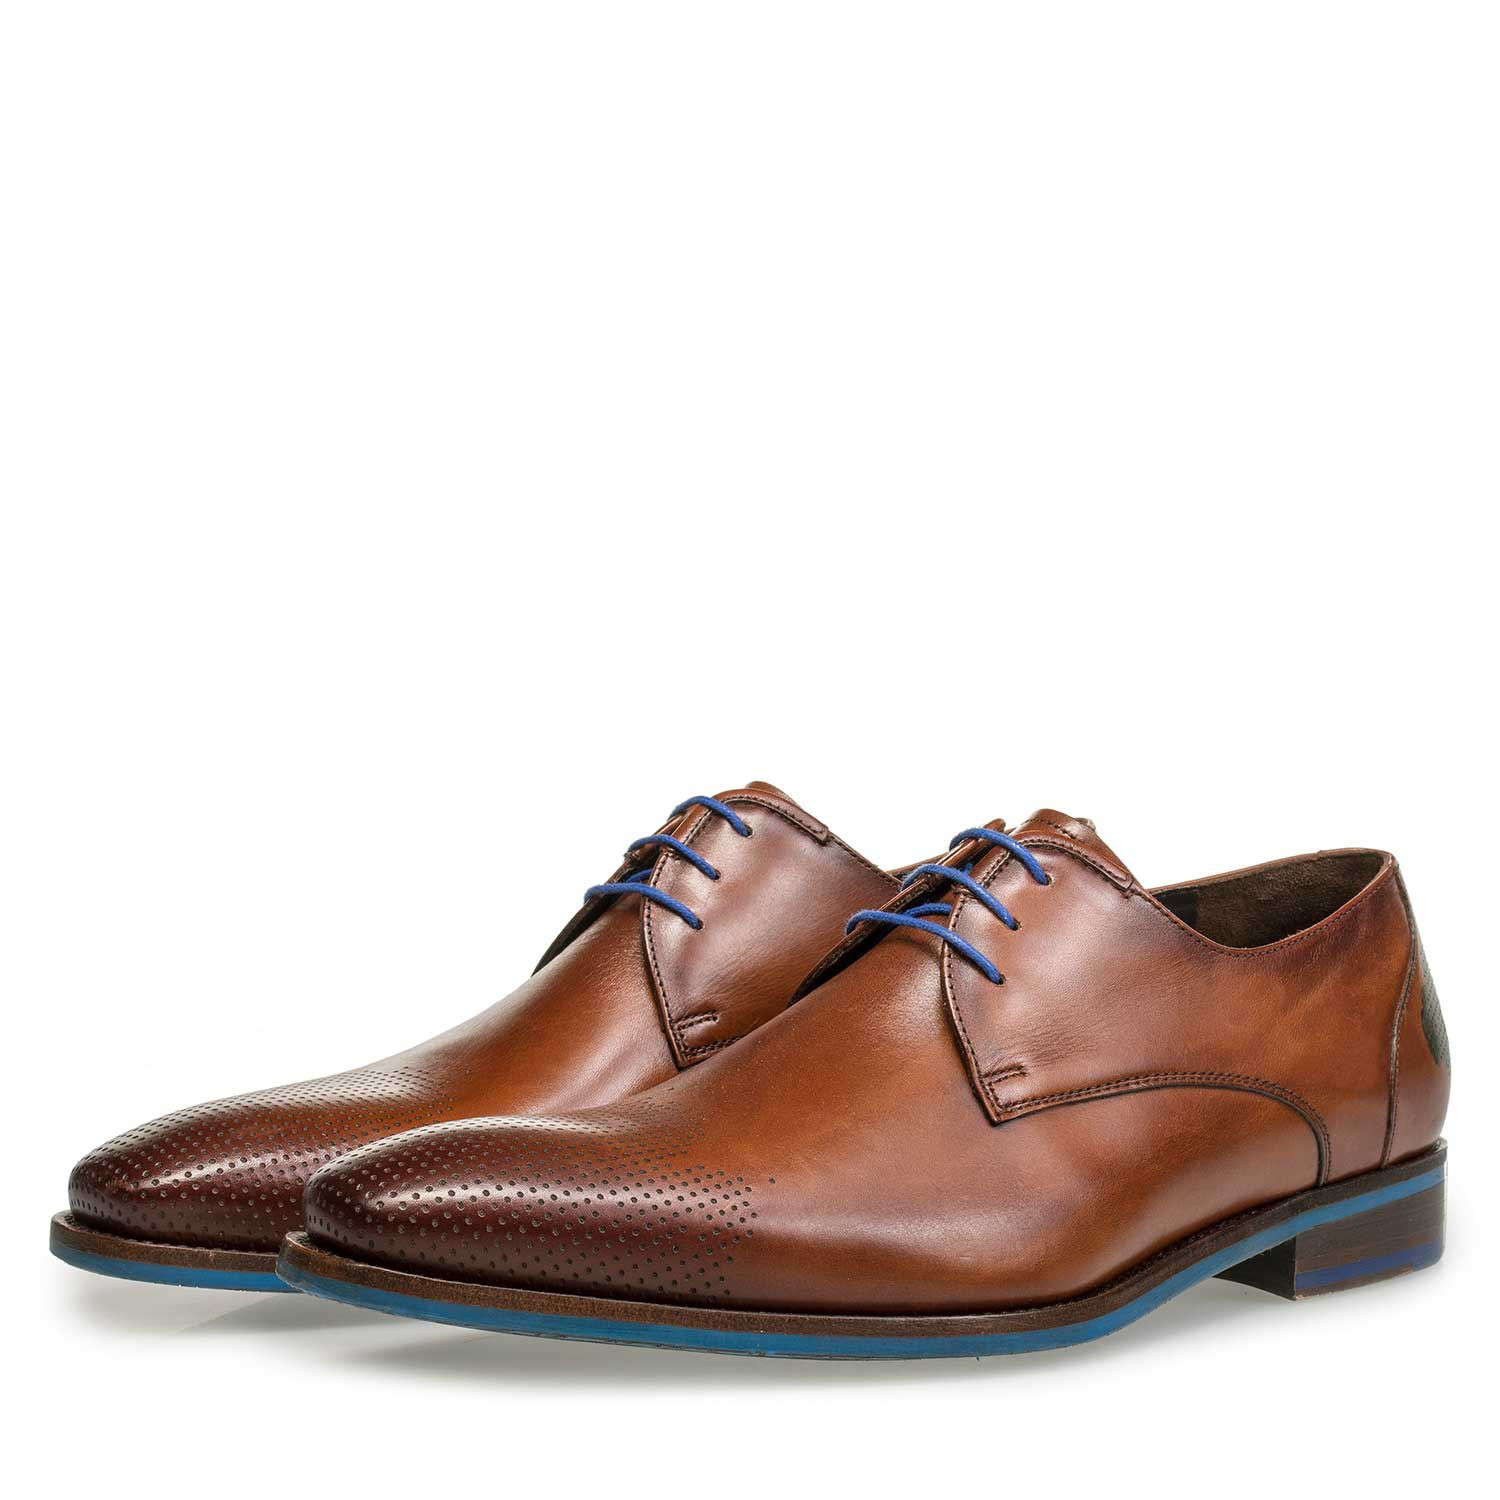 18193/00 - Cognac-coloured leather lace shoe with cloud pattern